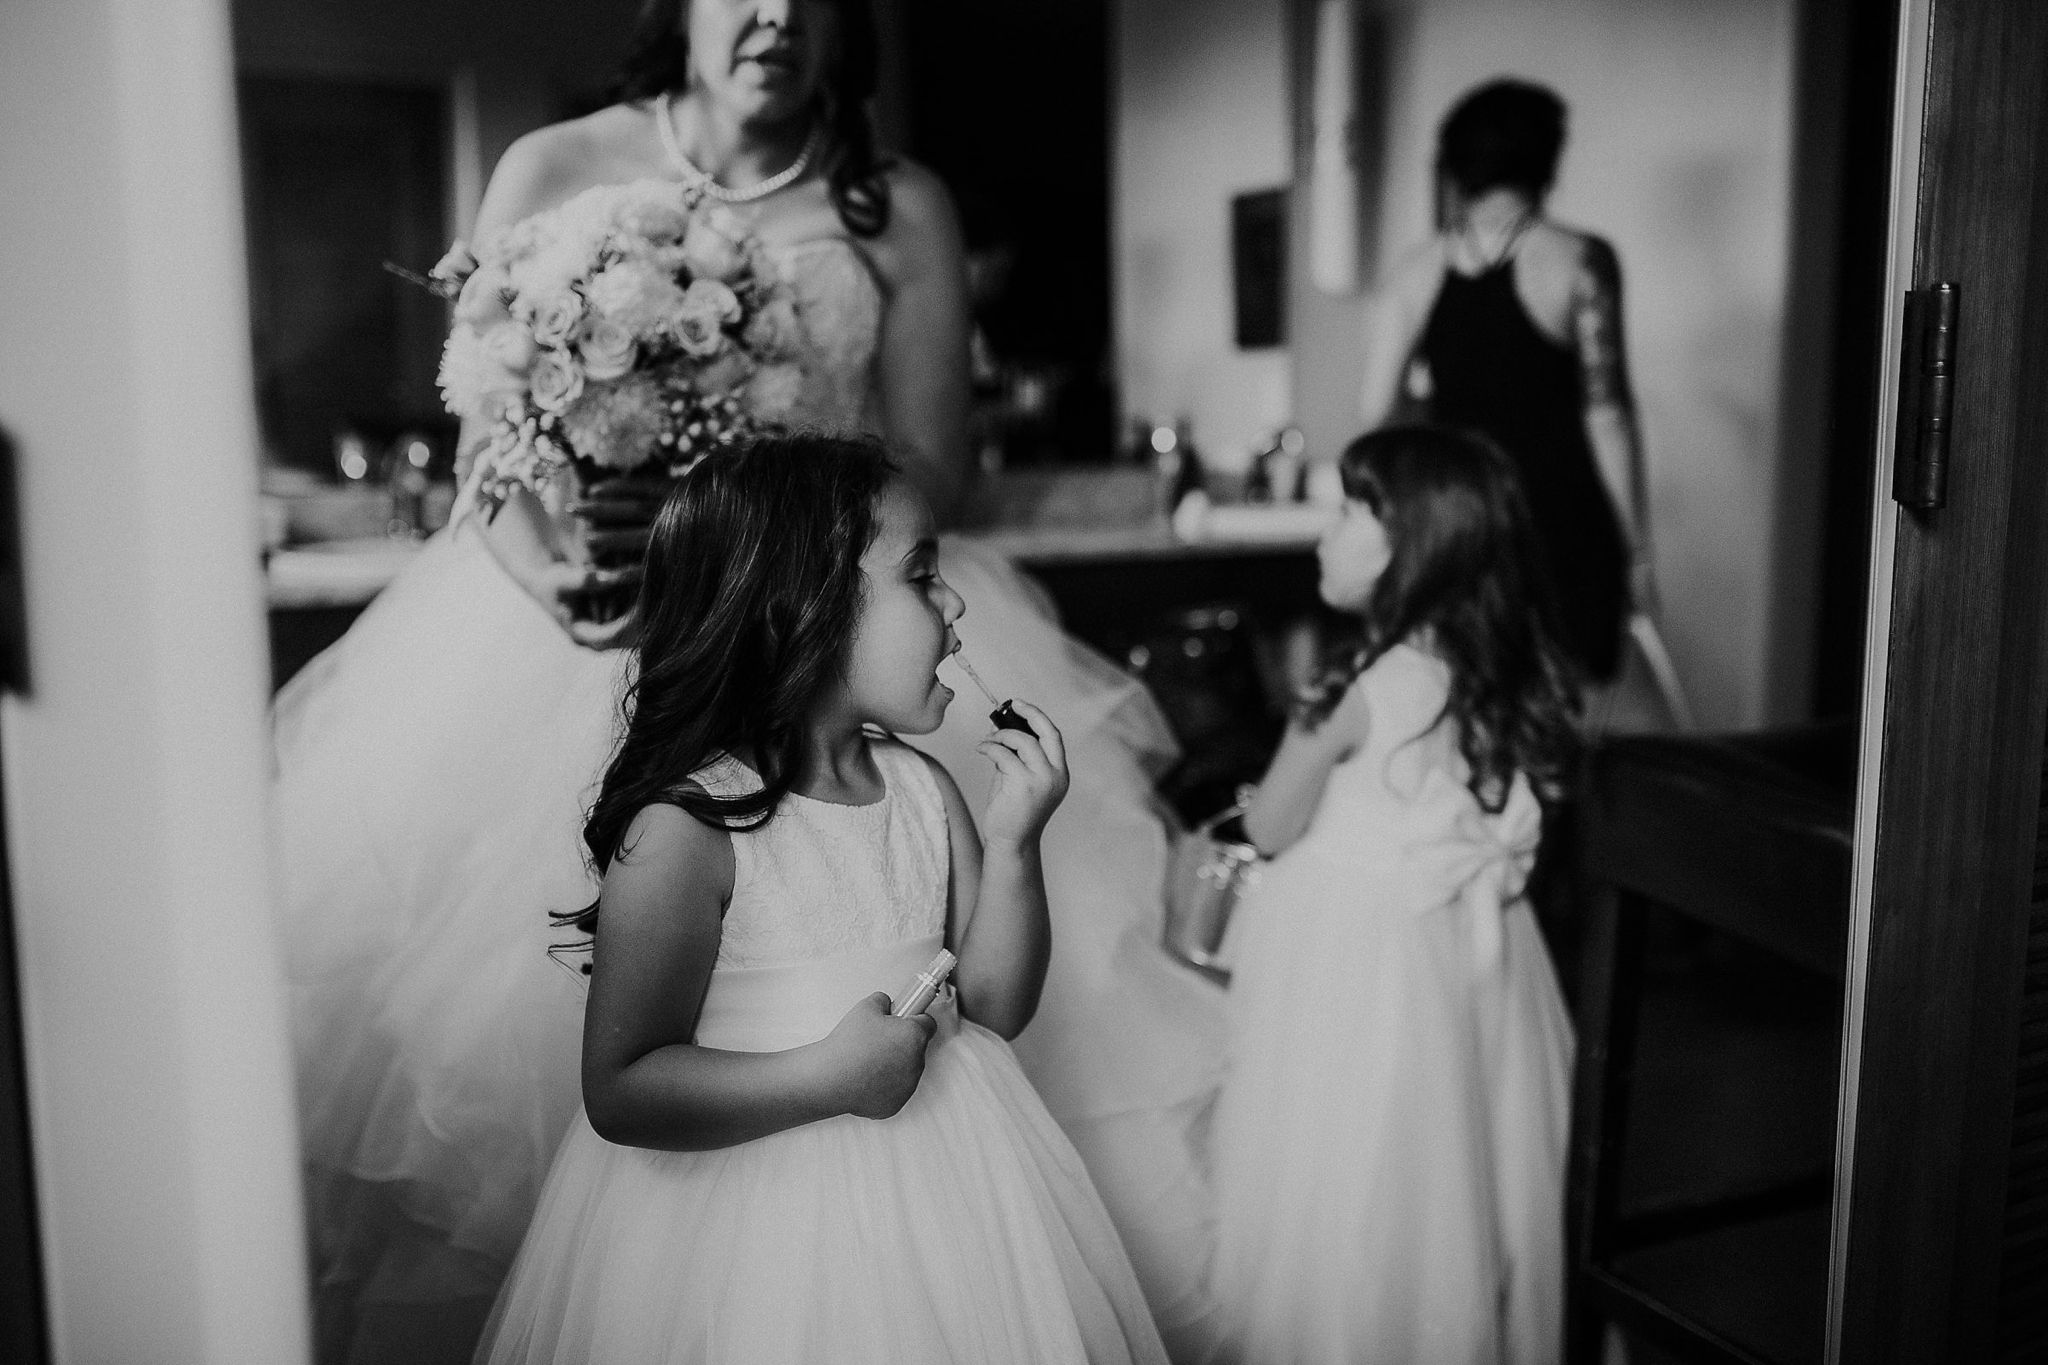 Alicia+lucia+photography+-+albuquerque+wedding+photographer+-+santa+fe+wedding+photography+-+new+mexico+wedding+photographer+-+new+mexico+wedding+-+flower+girl+-+wedding+flower+girl_0083.jpg